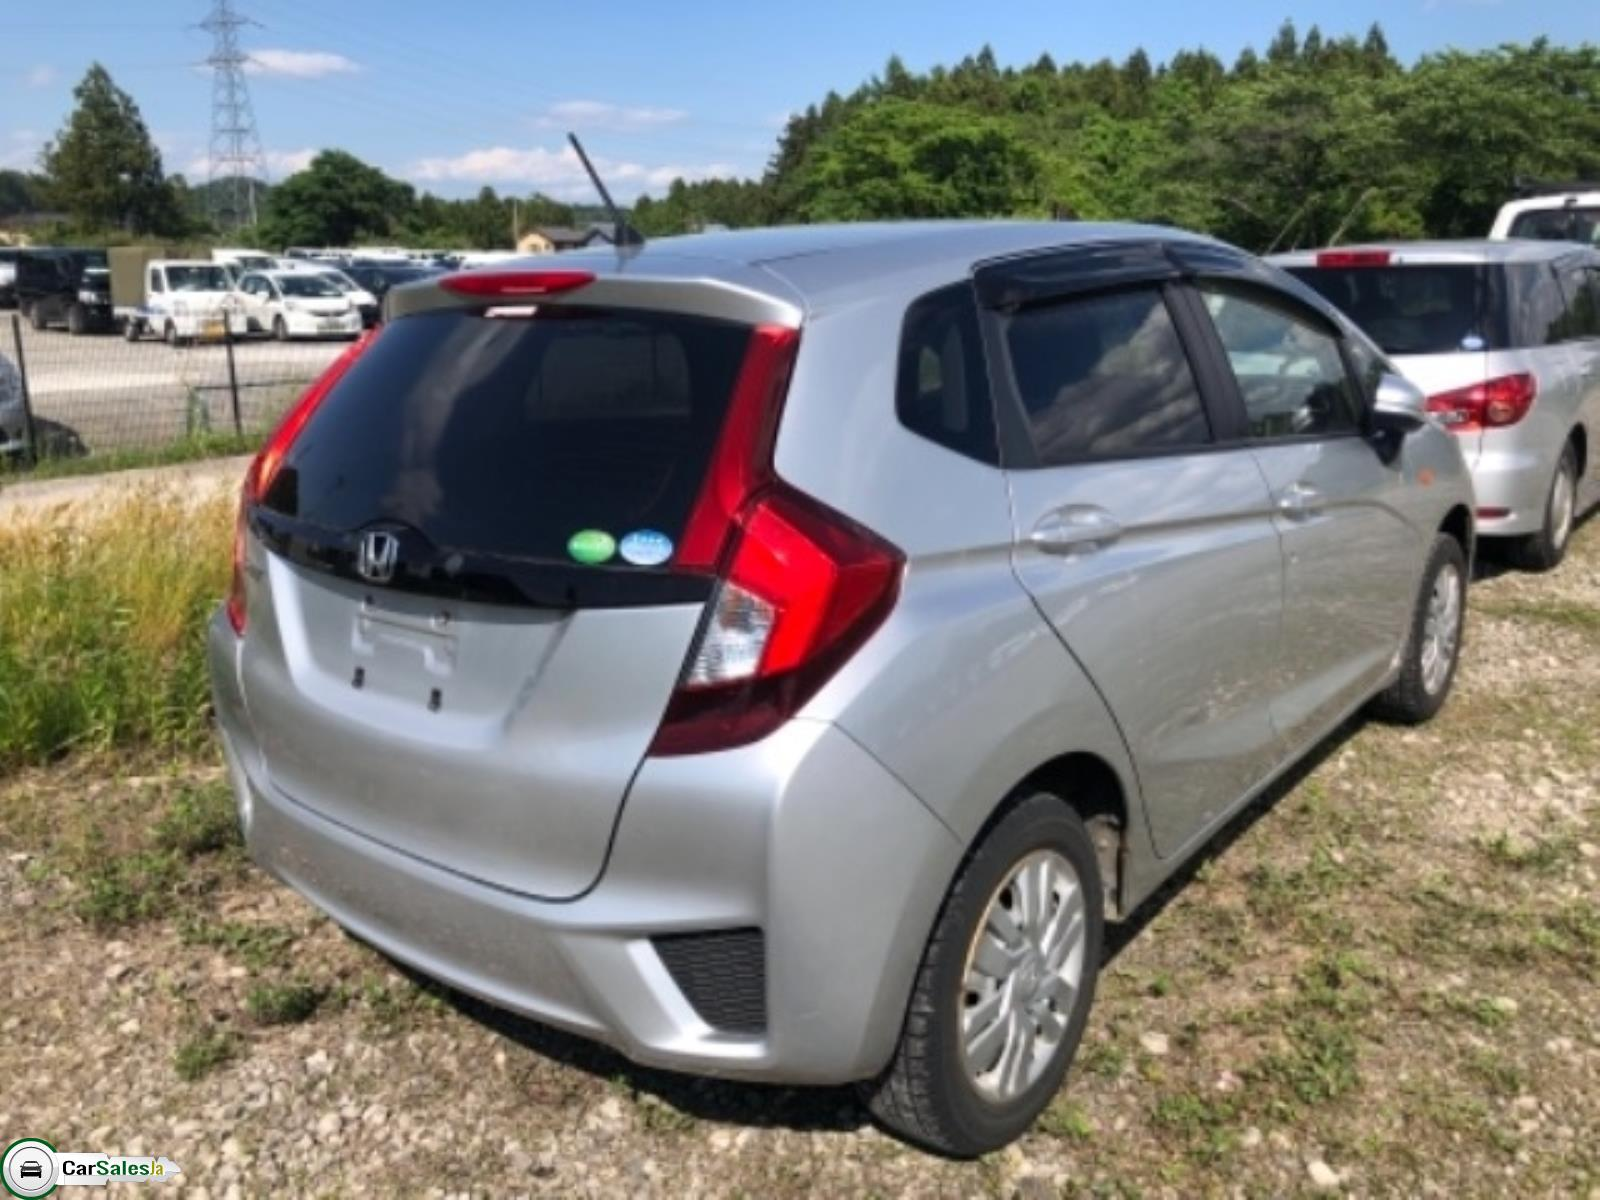 Cars for sale in Jamaica, Honda Fit Car for sale in Jamaica